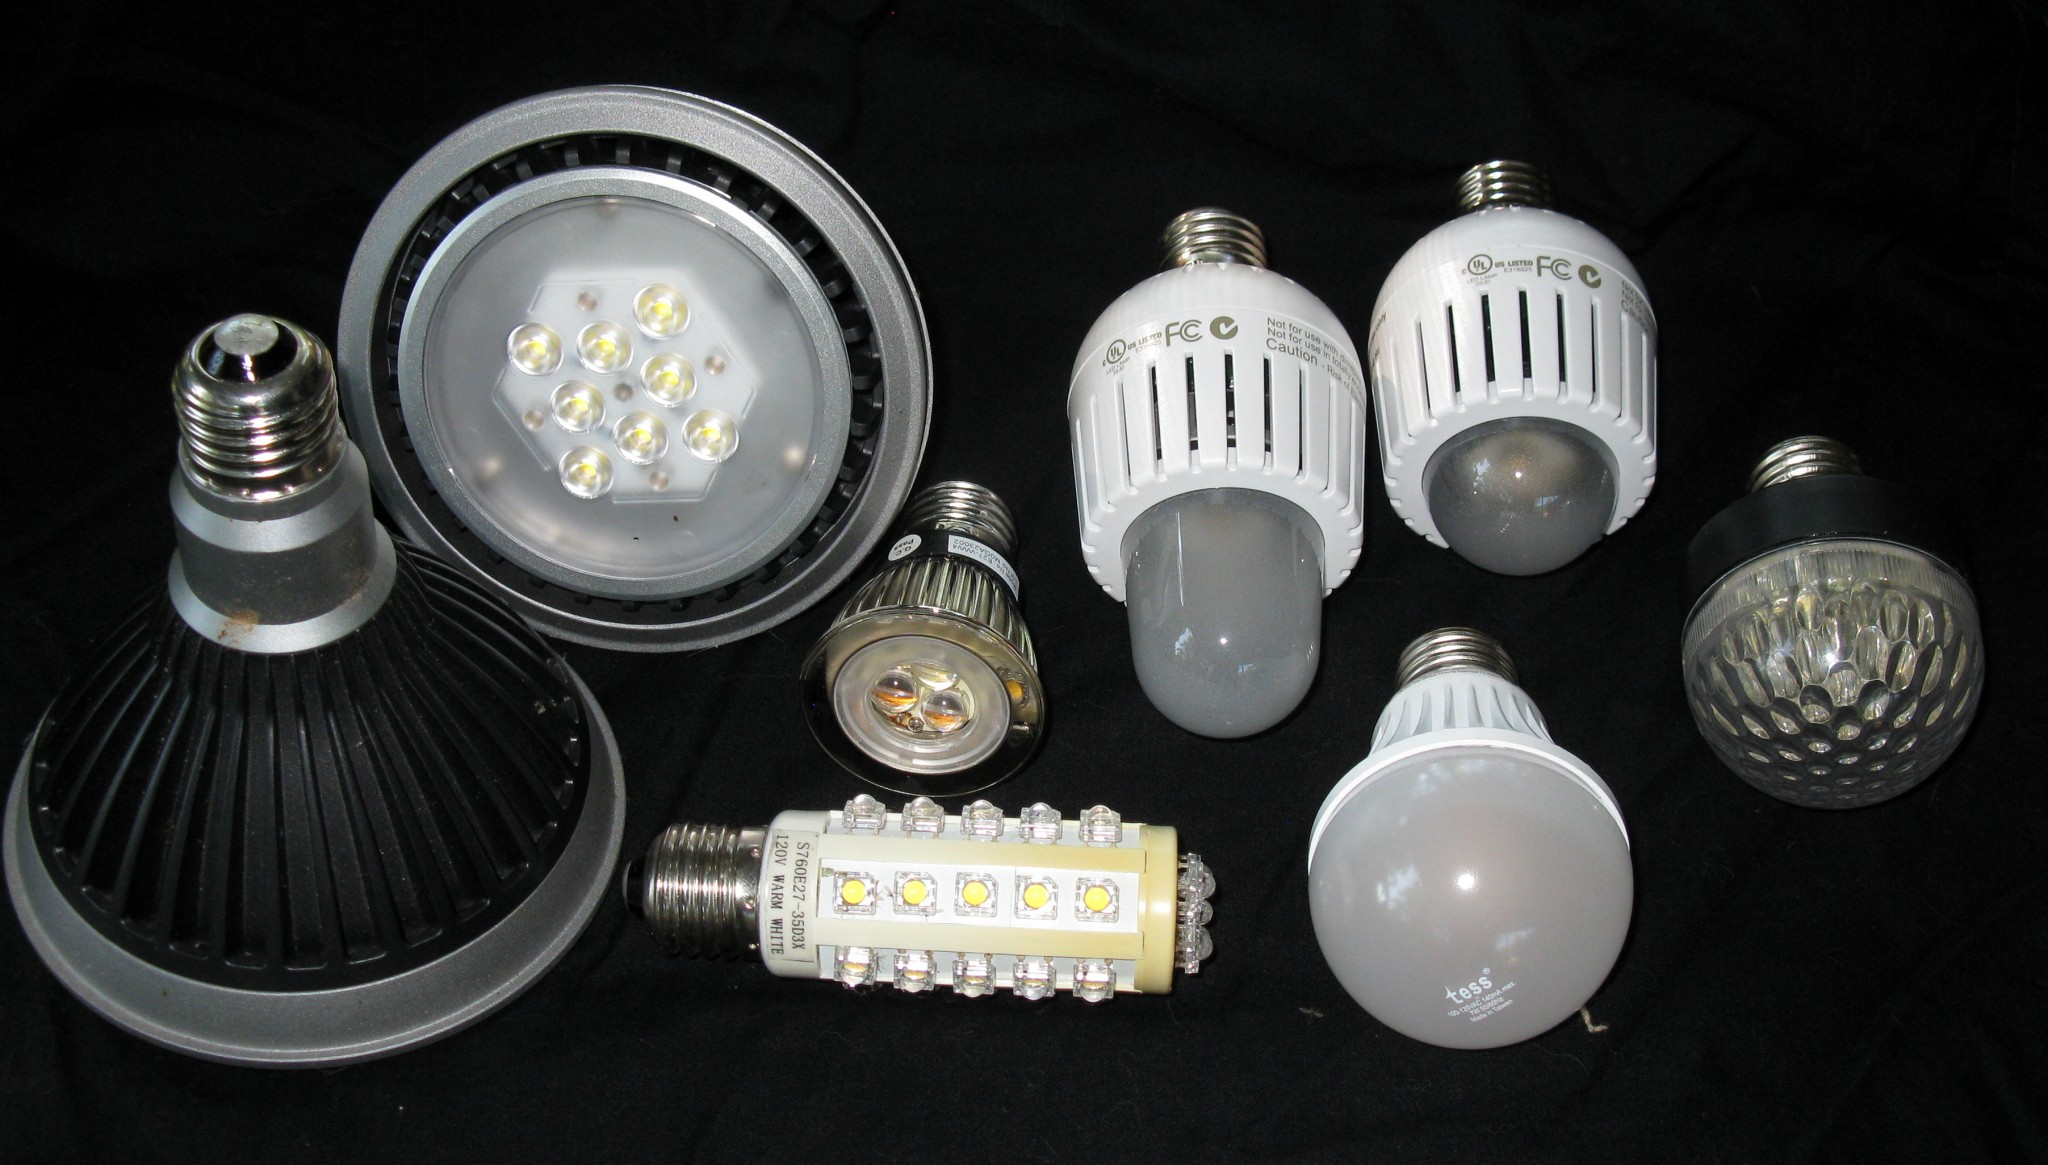 Getting To Know LED Lighting